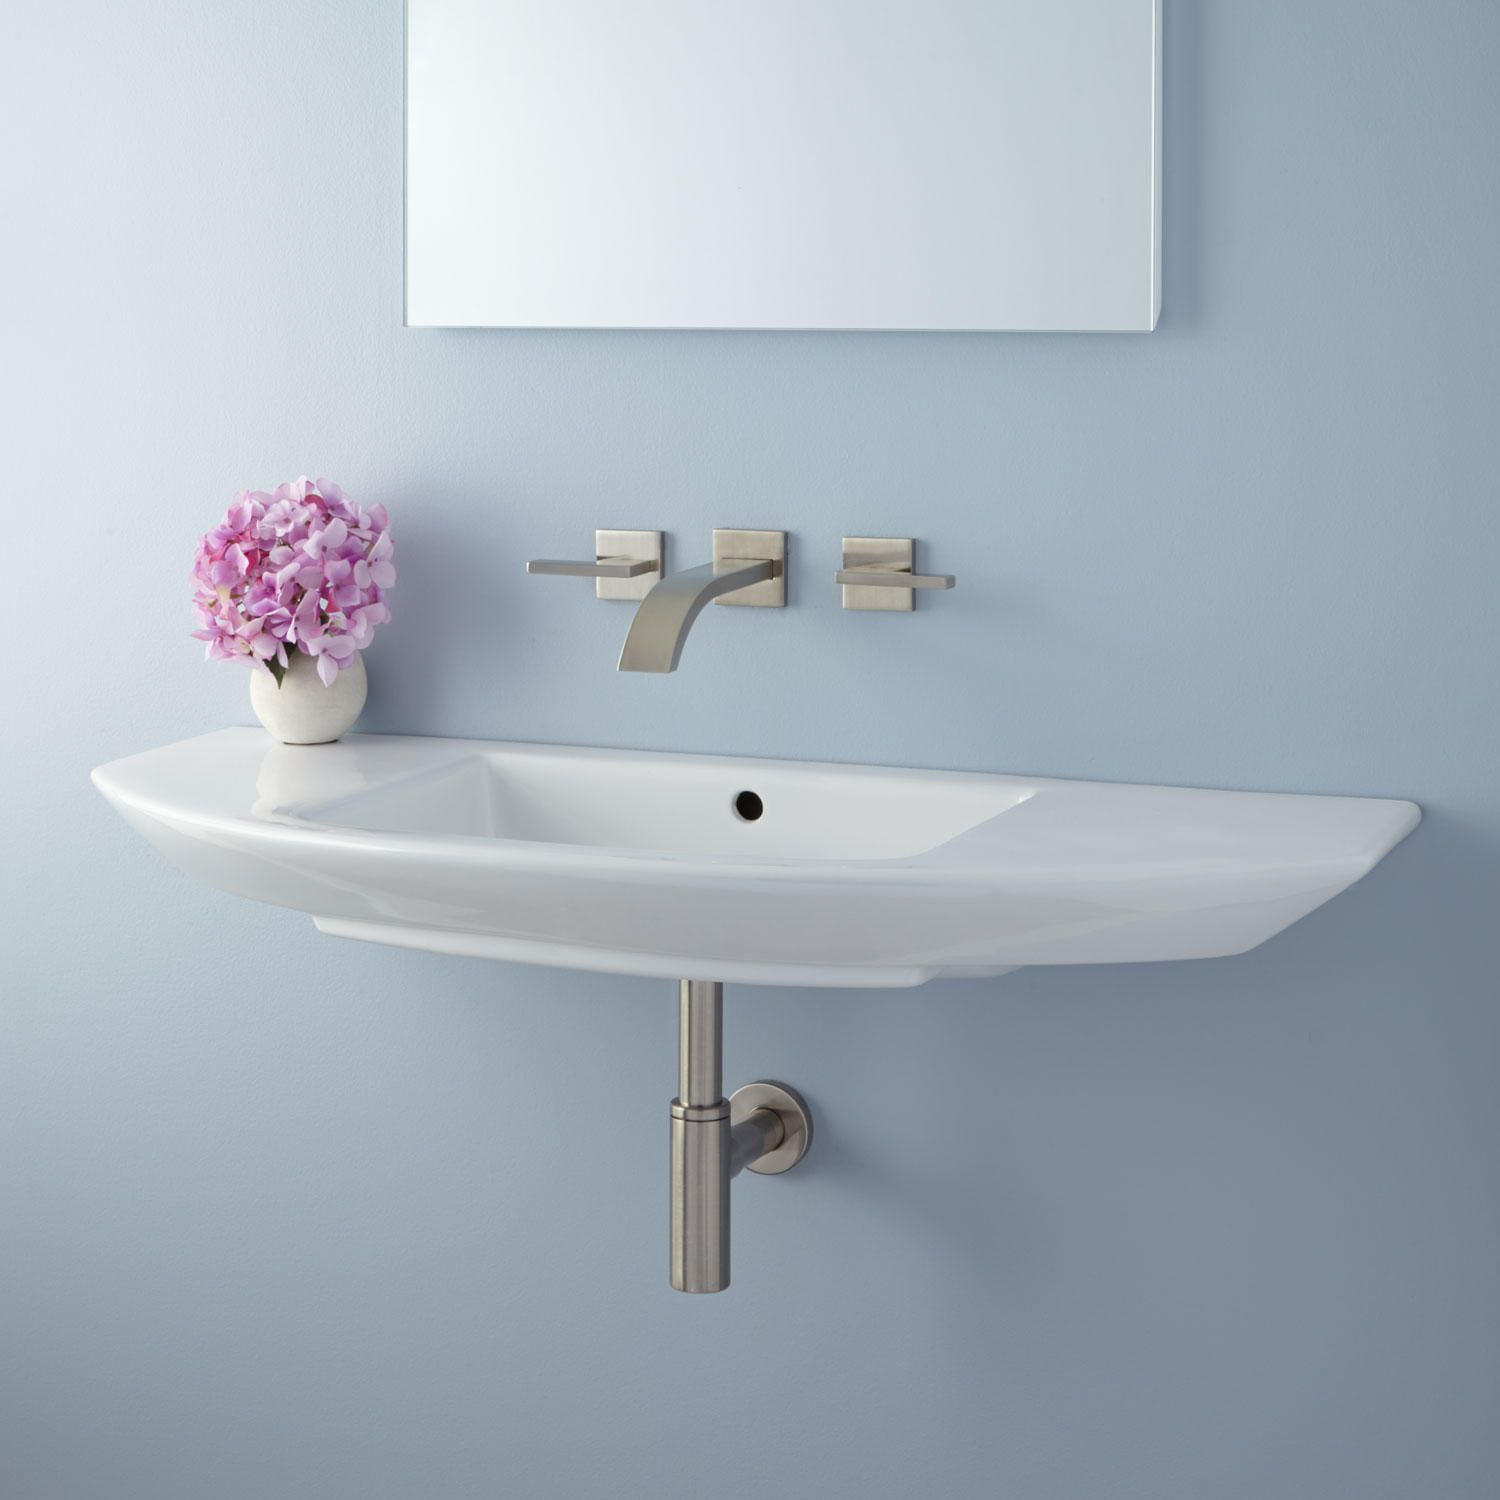 Evelin Porcelain Wall-Mount Sink in 2018 | S M A L L S P A C E S ...